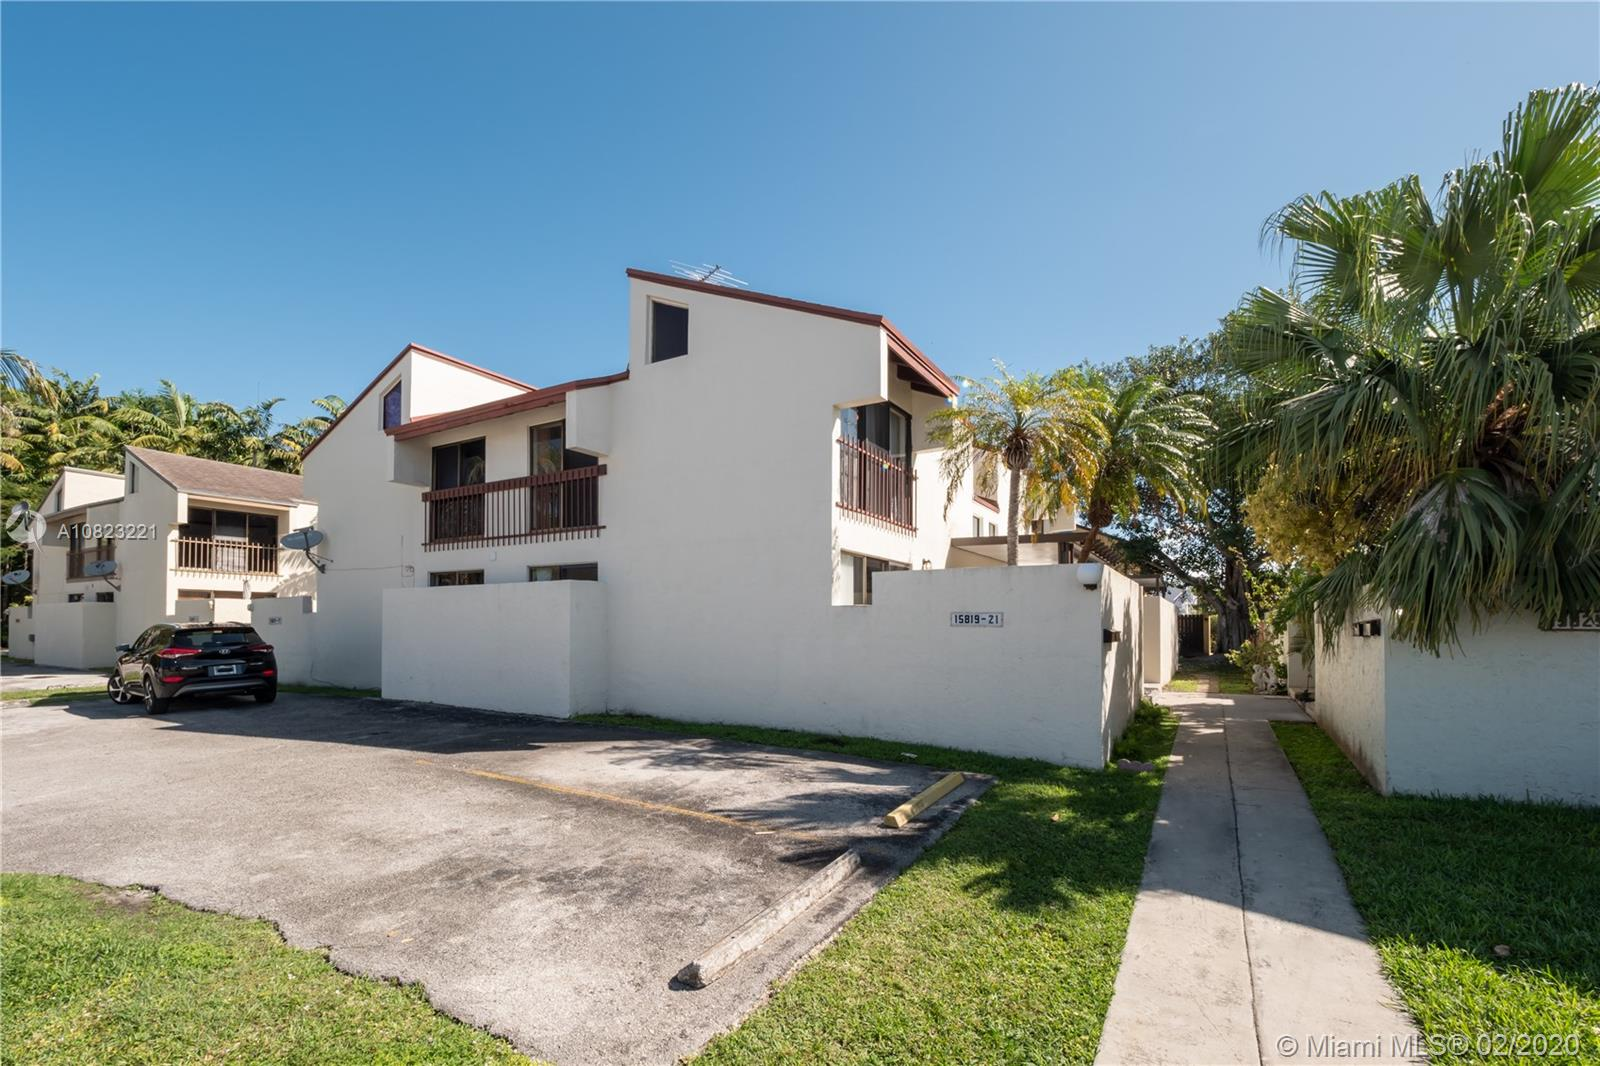 15819 SW 91st Ct #15819 For Sale A10823221, FL